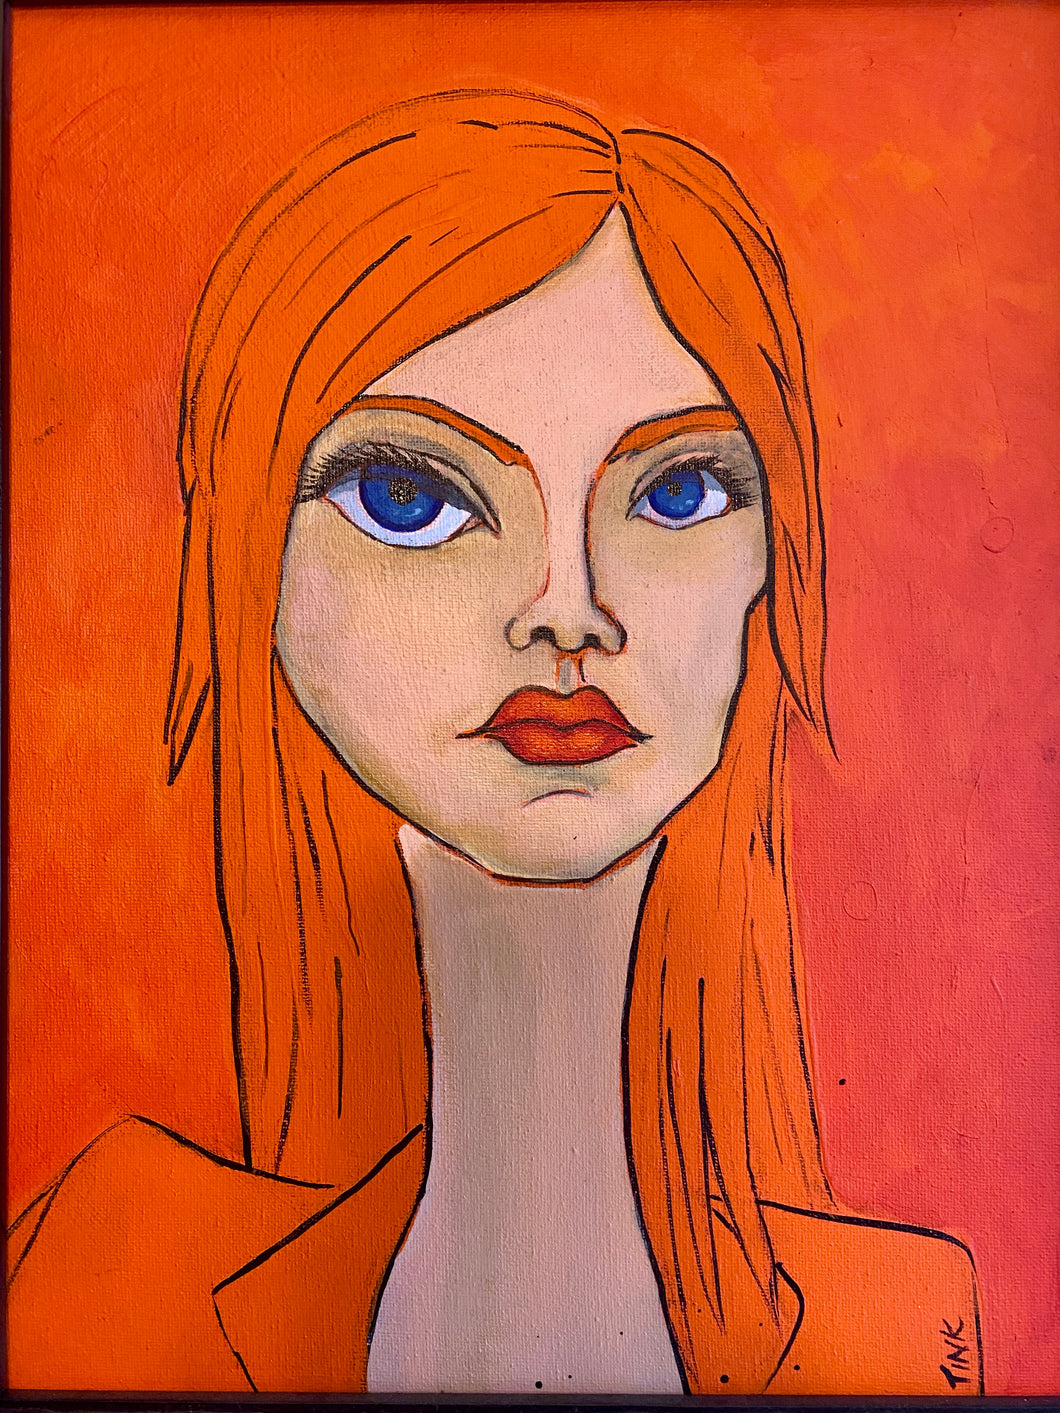 Imaginary Friend Portrait - Tiffany in Cadmium Orange